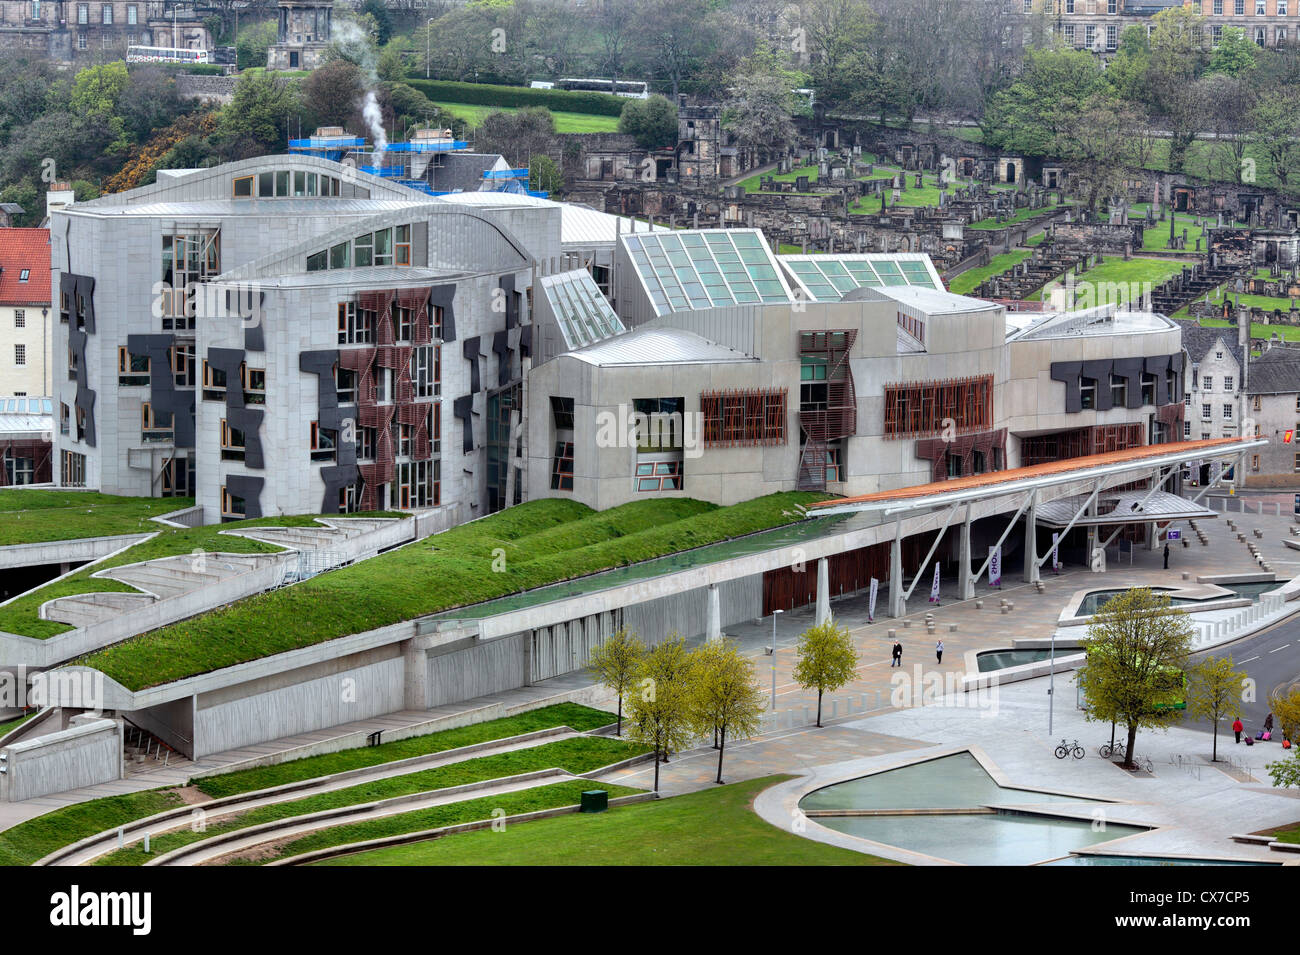 Scottish Parliament Building, Holyrood, Edinburgh, Scotland, UK - Stock Image